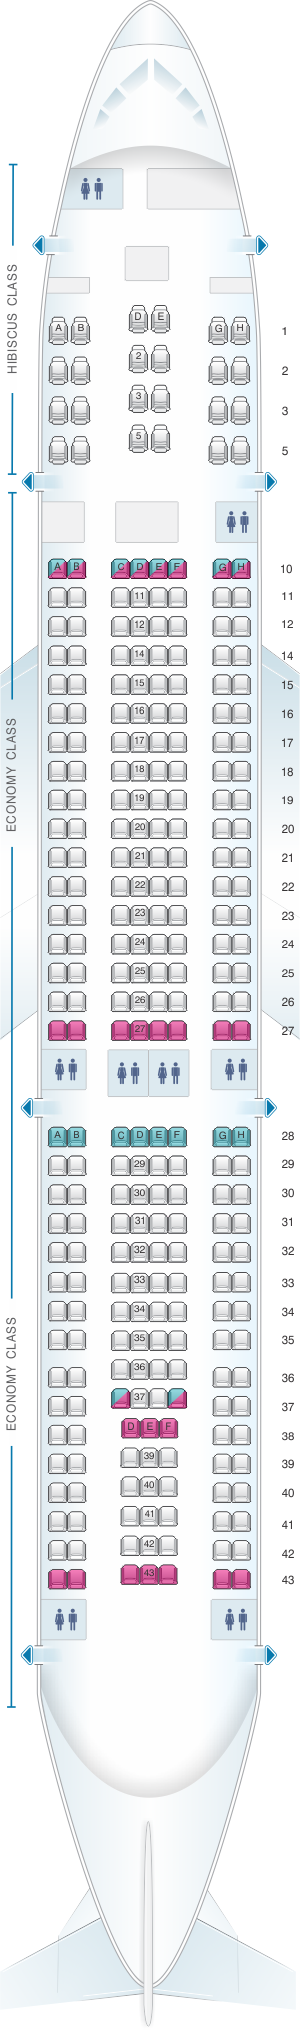 Seat map for Aircalin Airbus A330 200